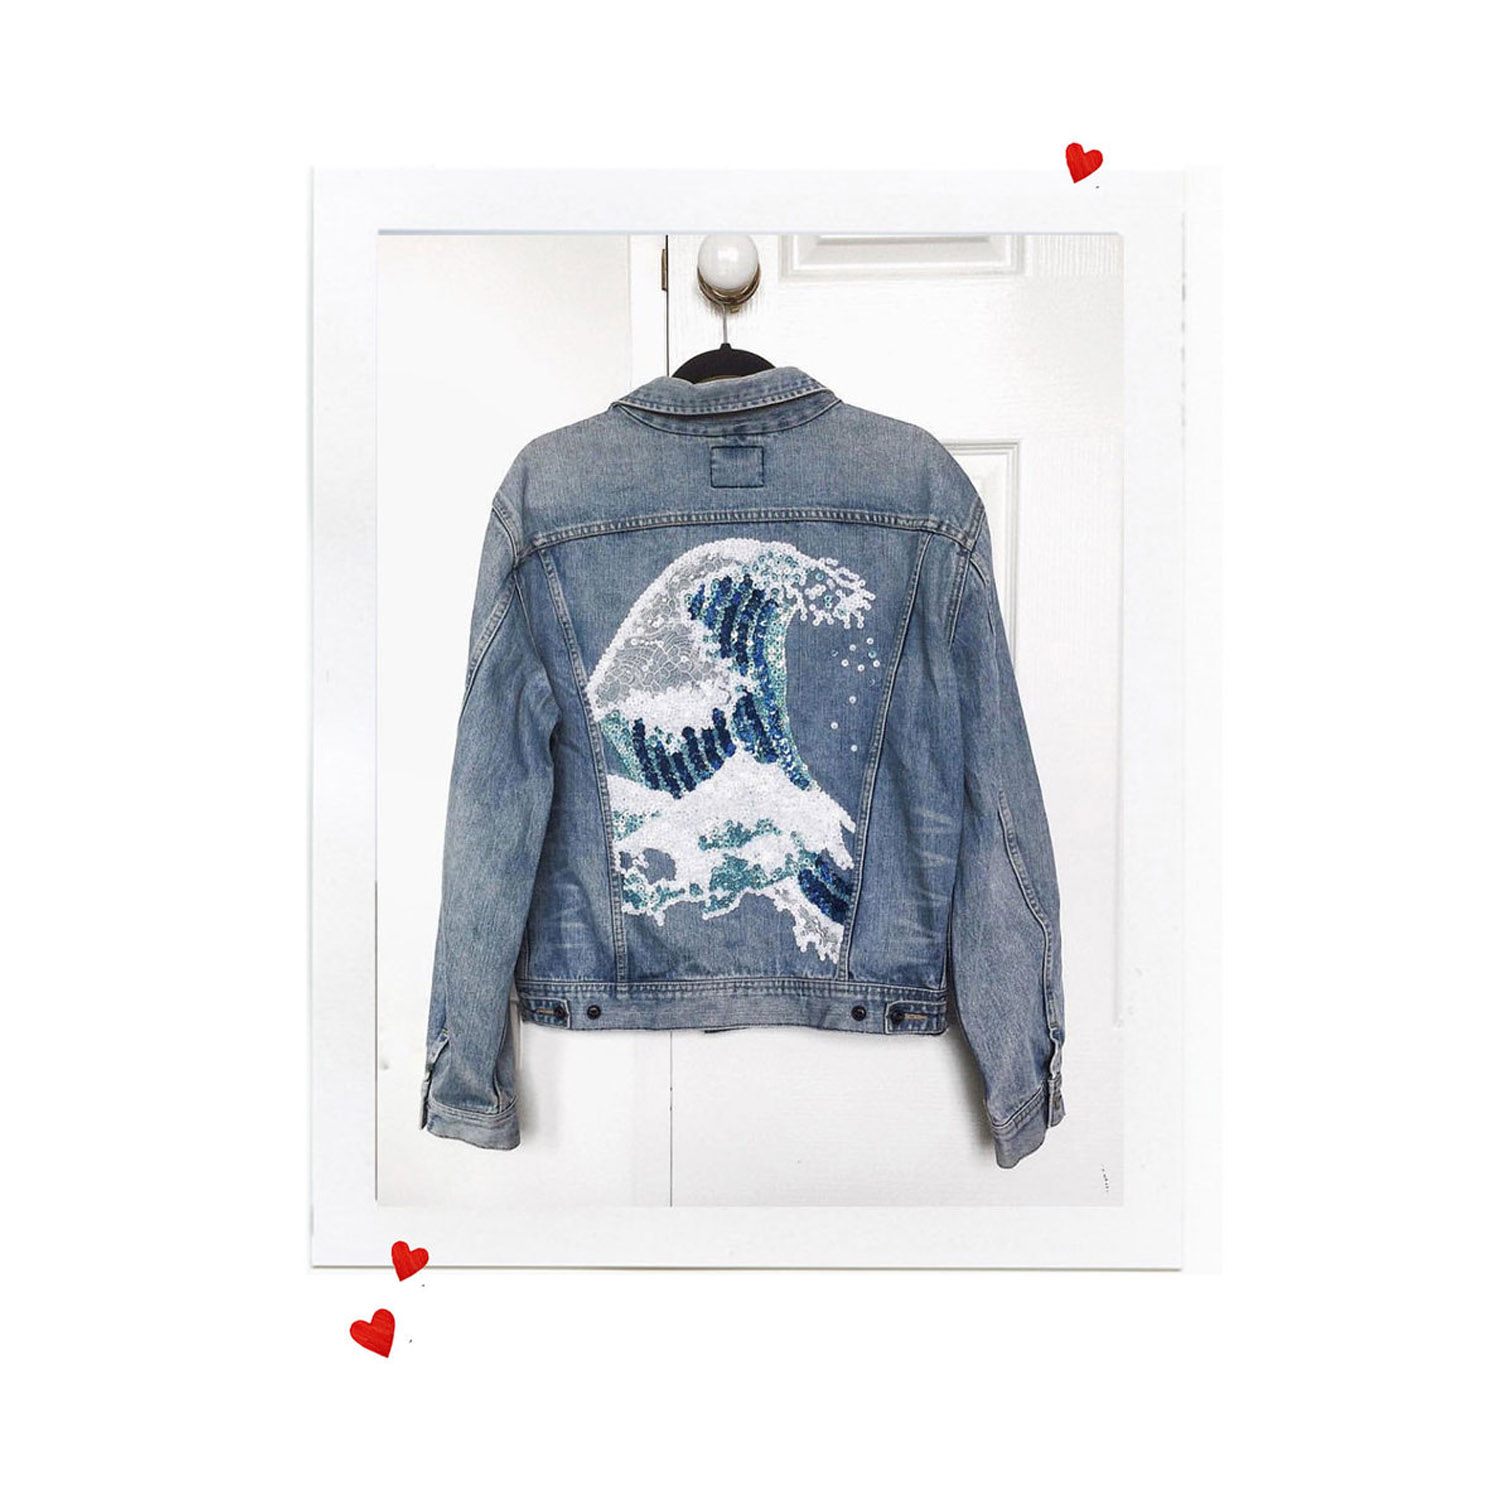 THE GREAT WAVE JACKET